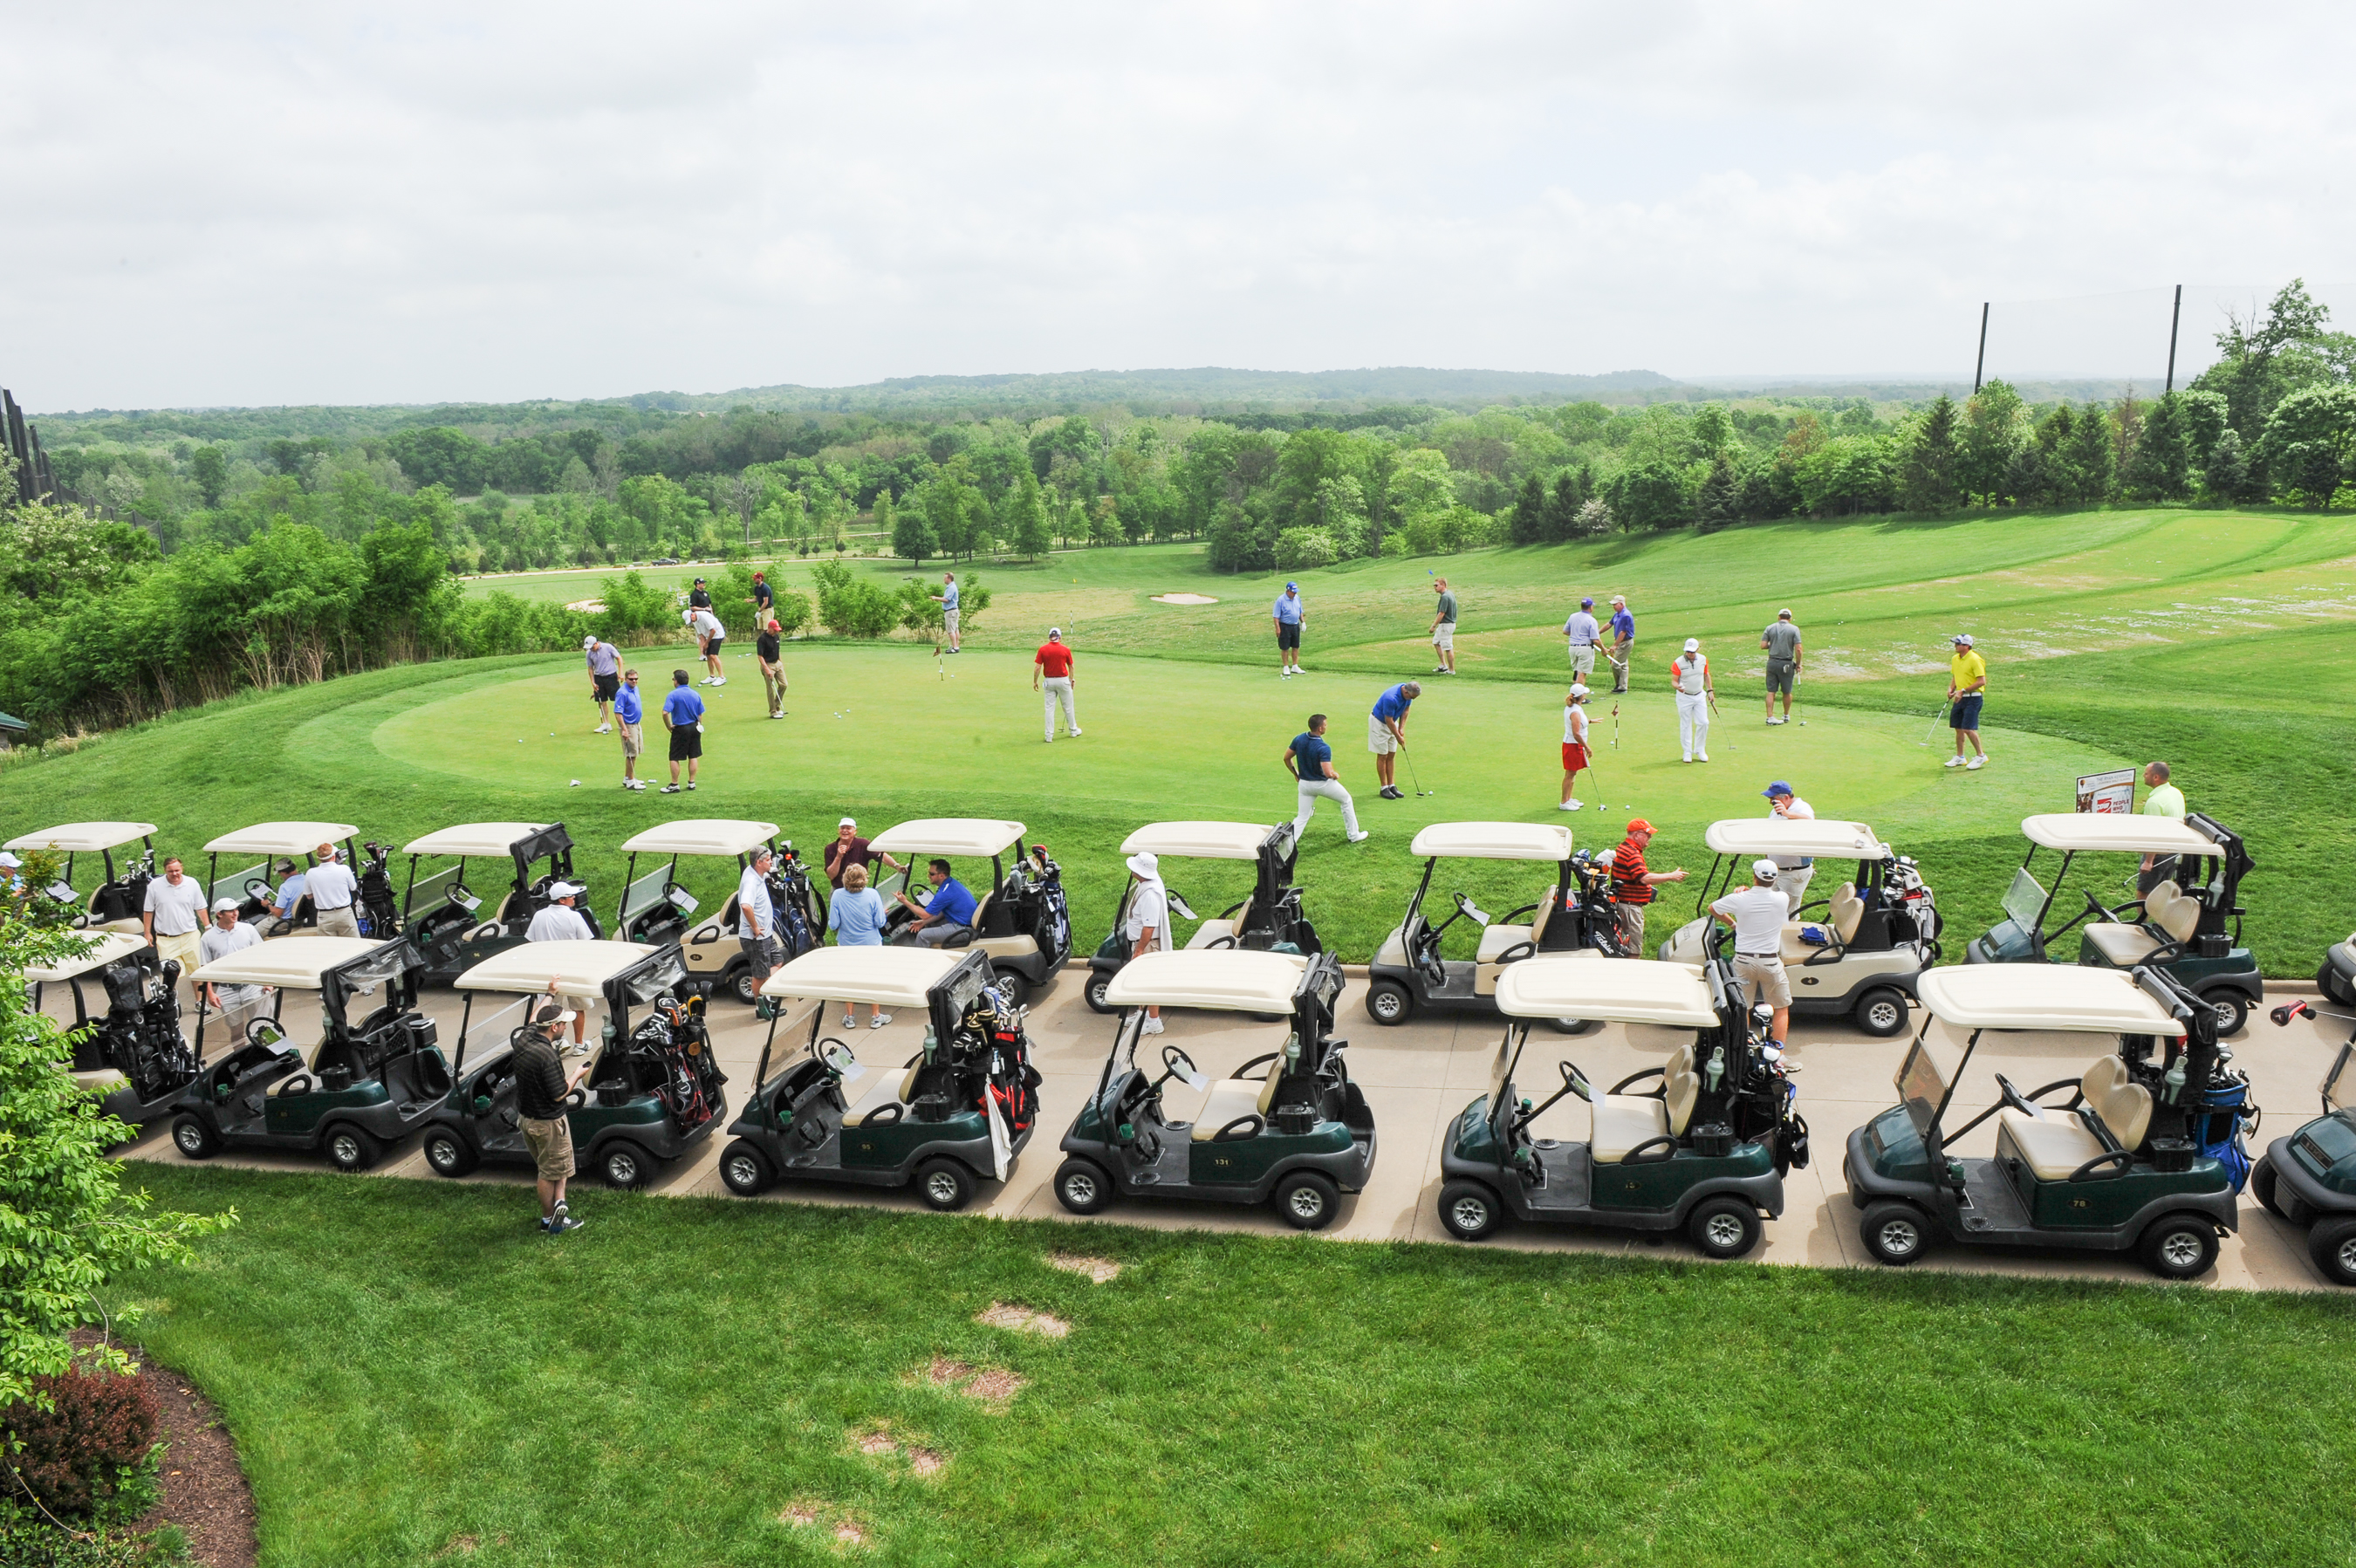 Leukemia Golf Classic View